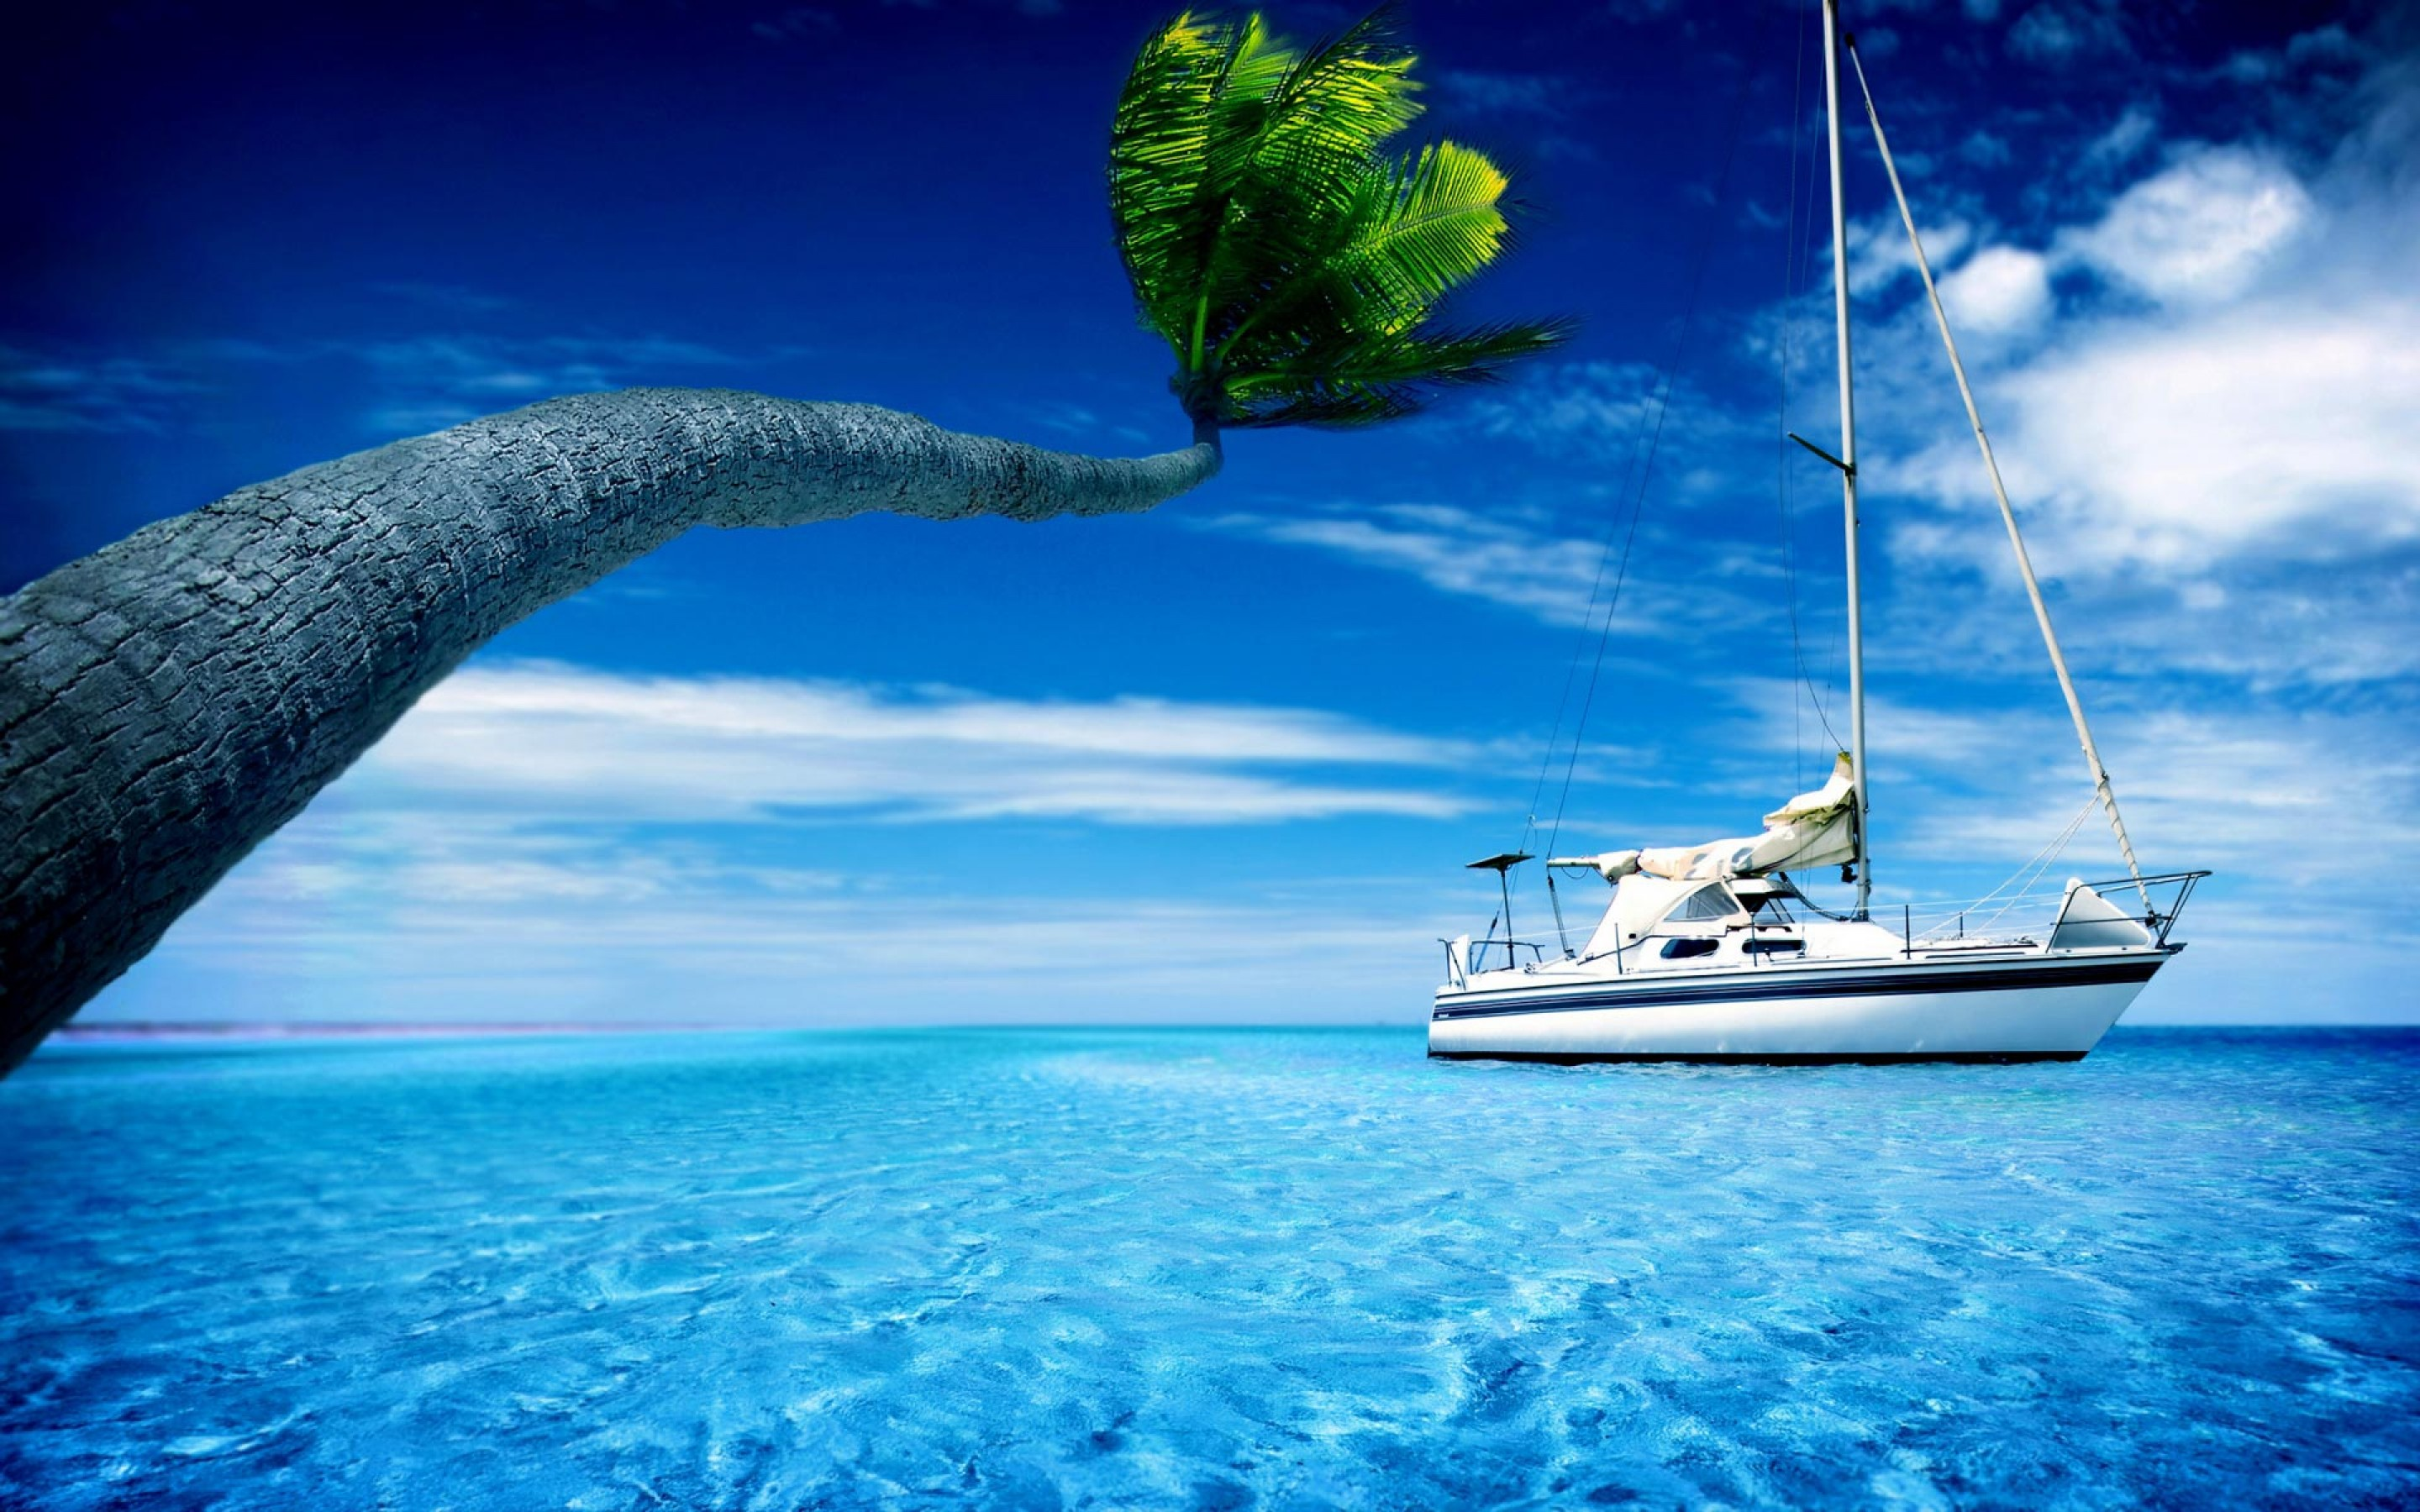 Hd wallpaper beach - Boat Beach Wallpaper Images Full Hd 332666 835 Wallpaper Moshlab